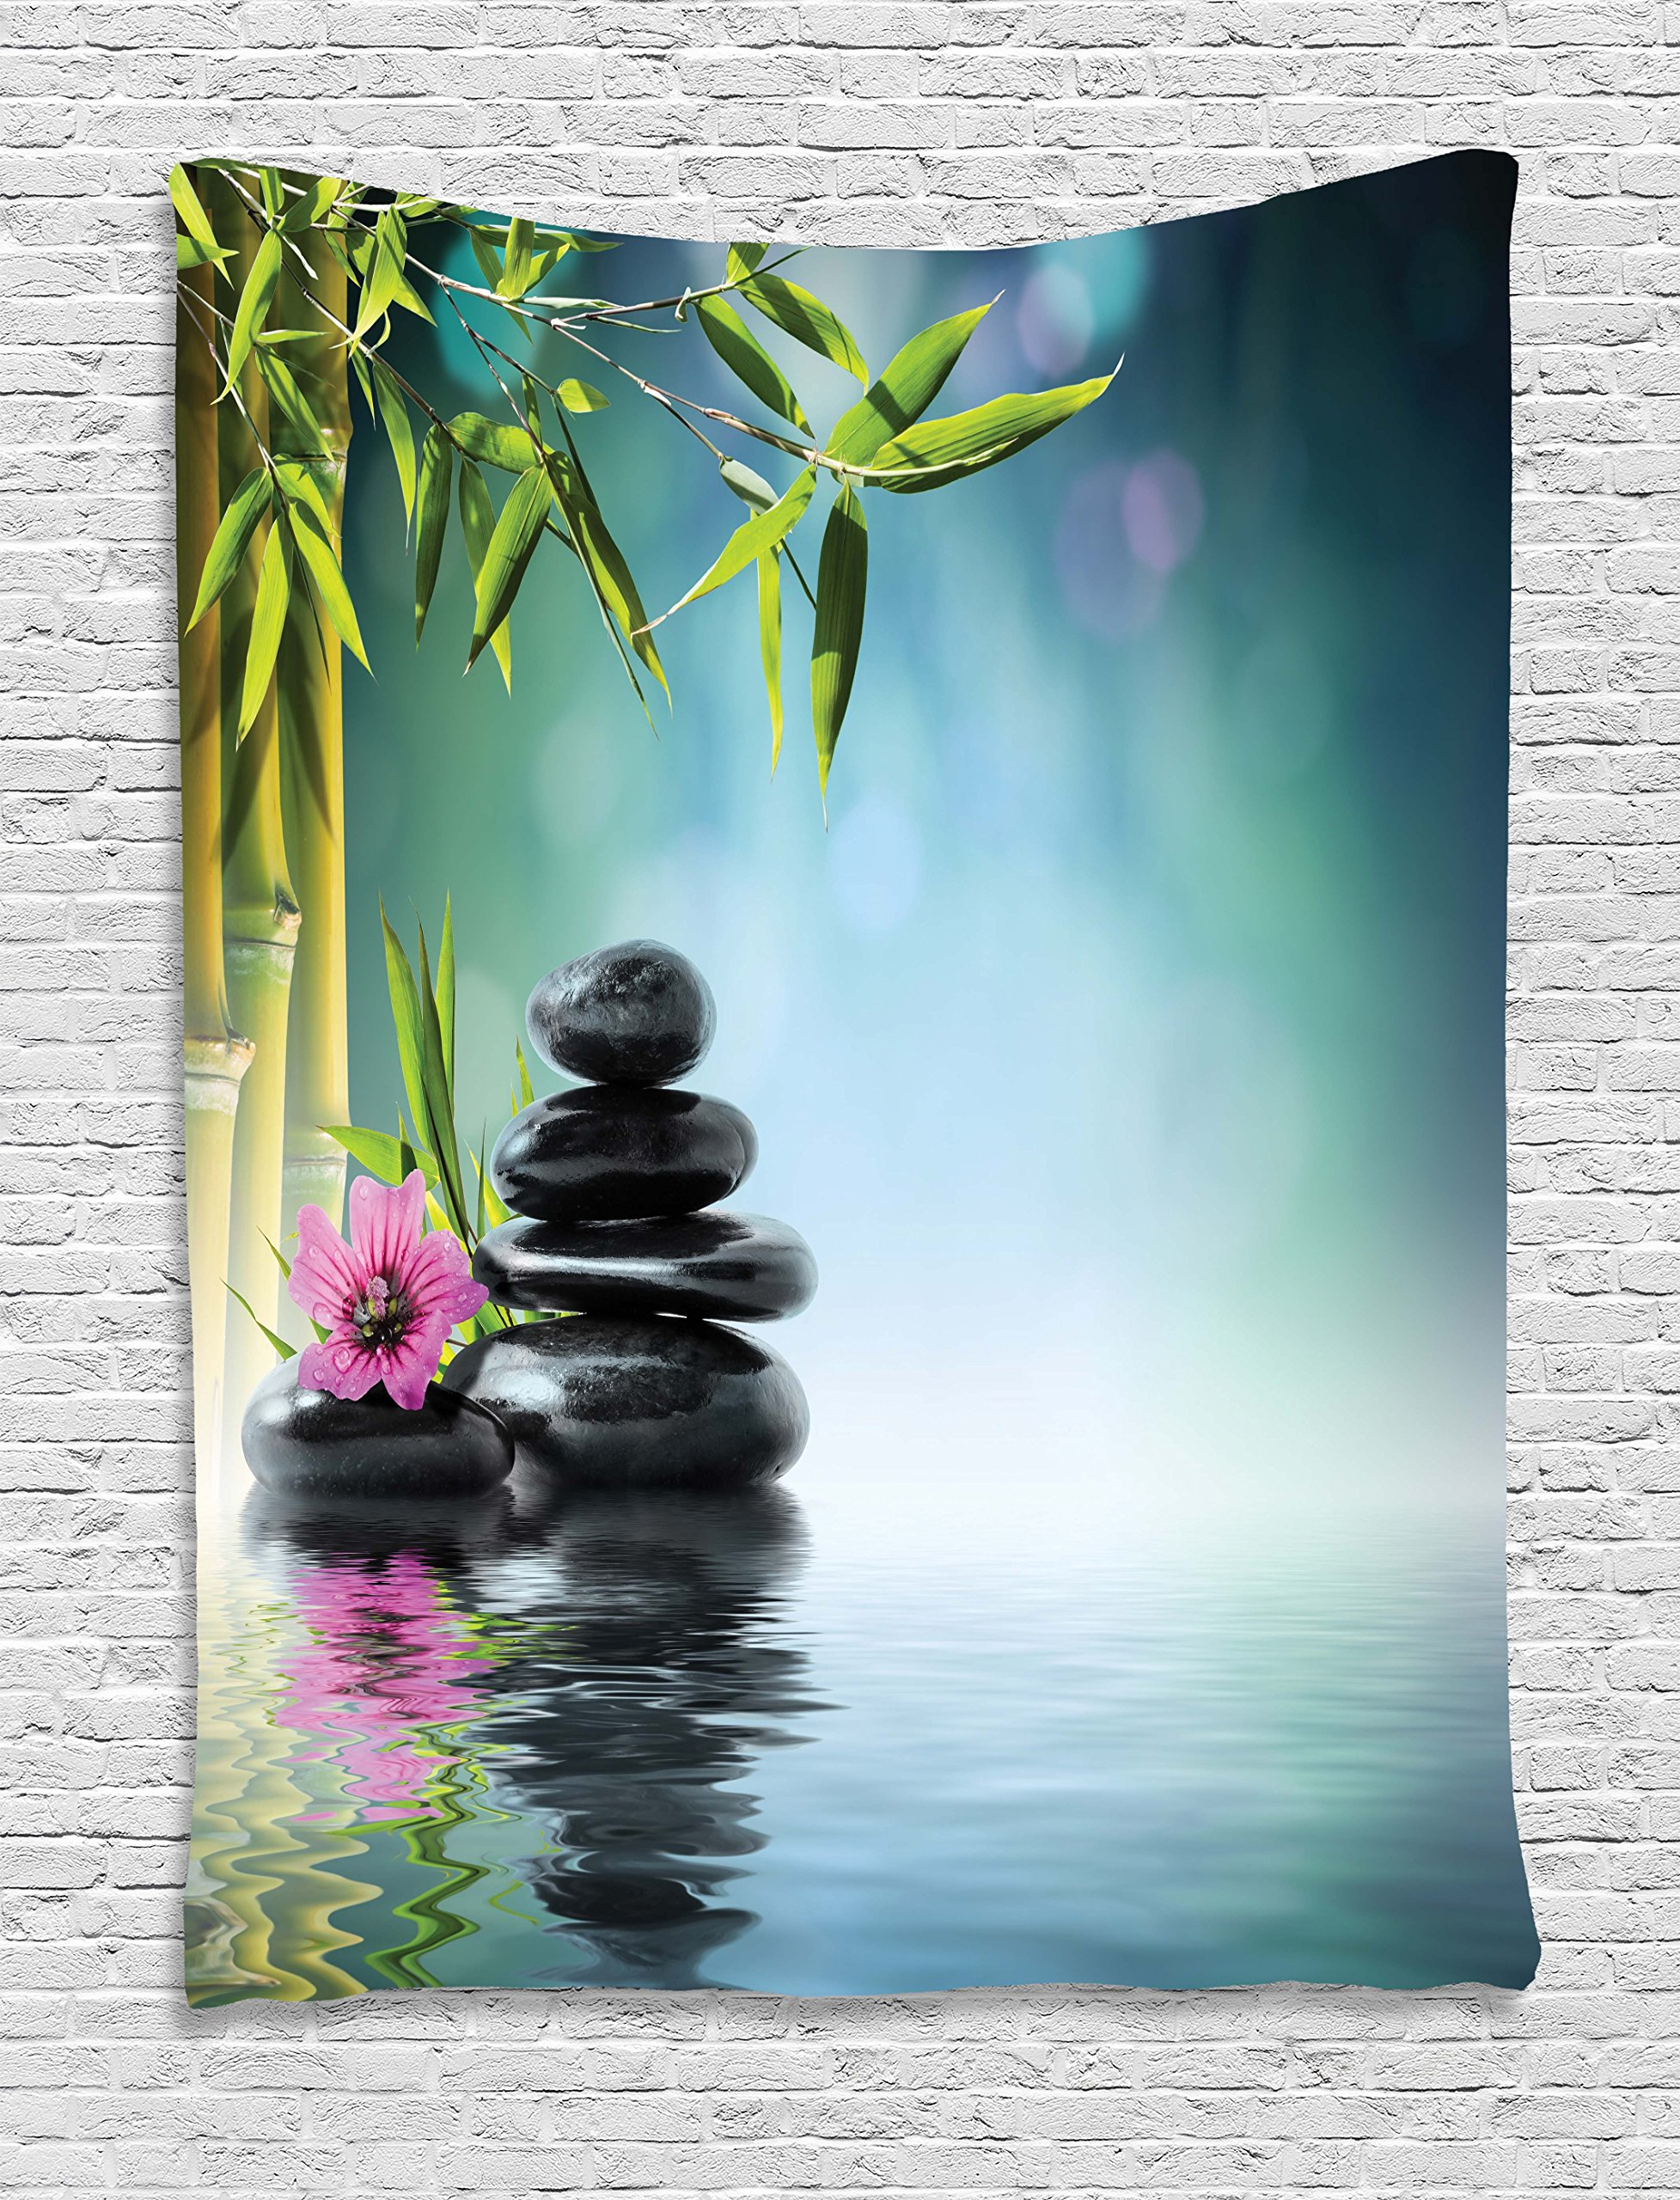 Ambesonne Zen Garden Tapestry, Pink Flower Spa Stones and Bamboo Tree on The Water Relaxation Theraphy Peace, Wall Hanging for Bedroom Living Room Dorm, 60 W X 80 L inches, Multicolor